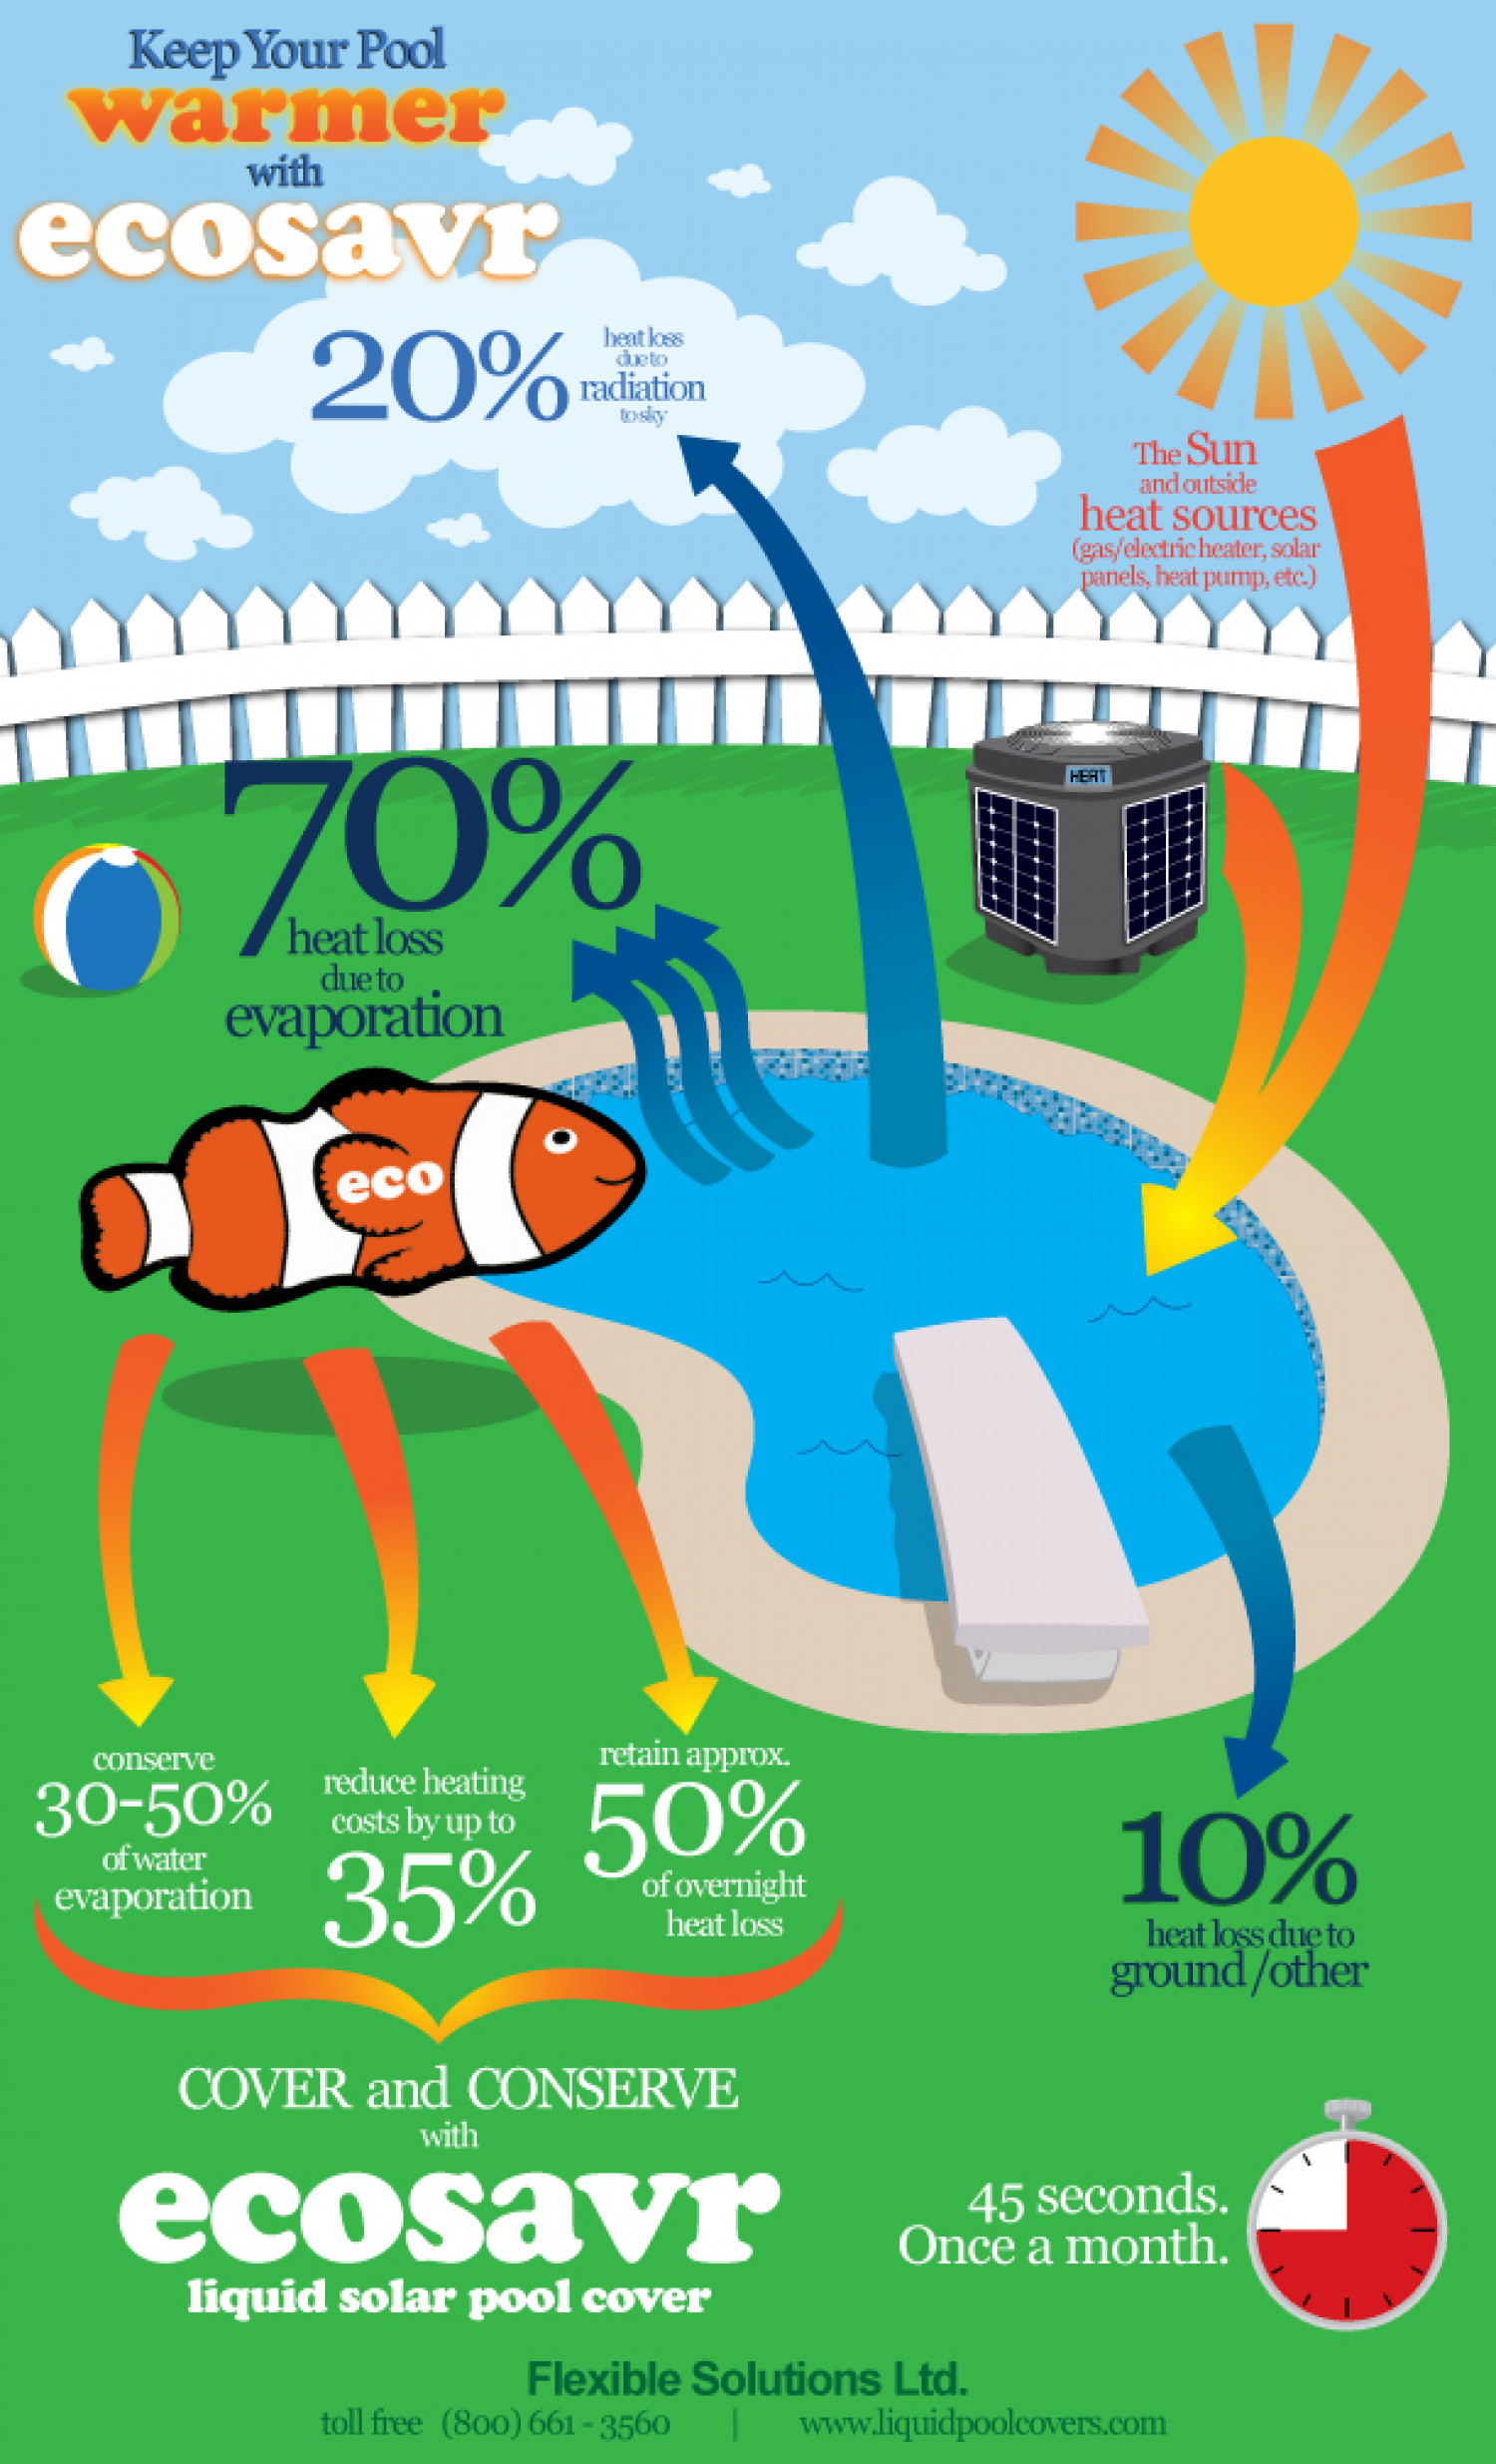 Keep Your Pool Warmer with EcoSavr Infographic